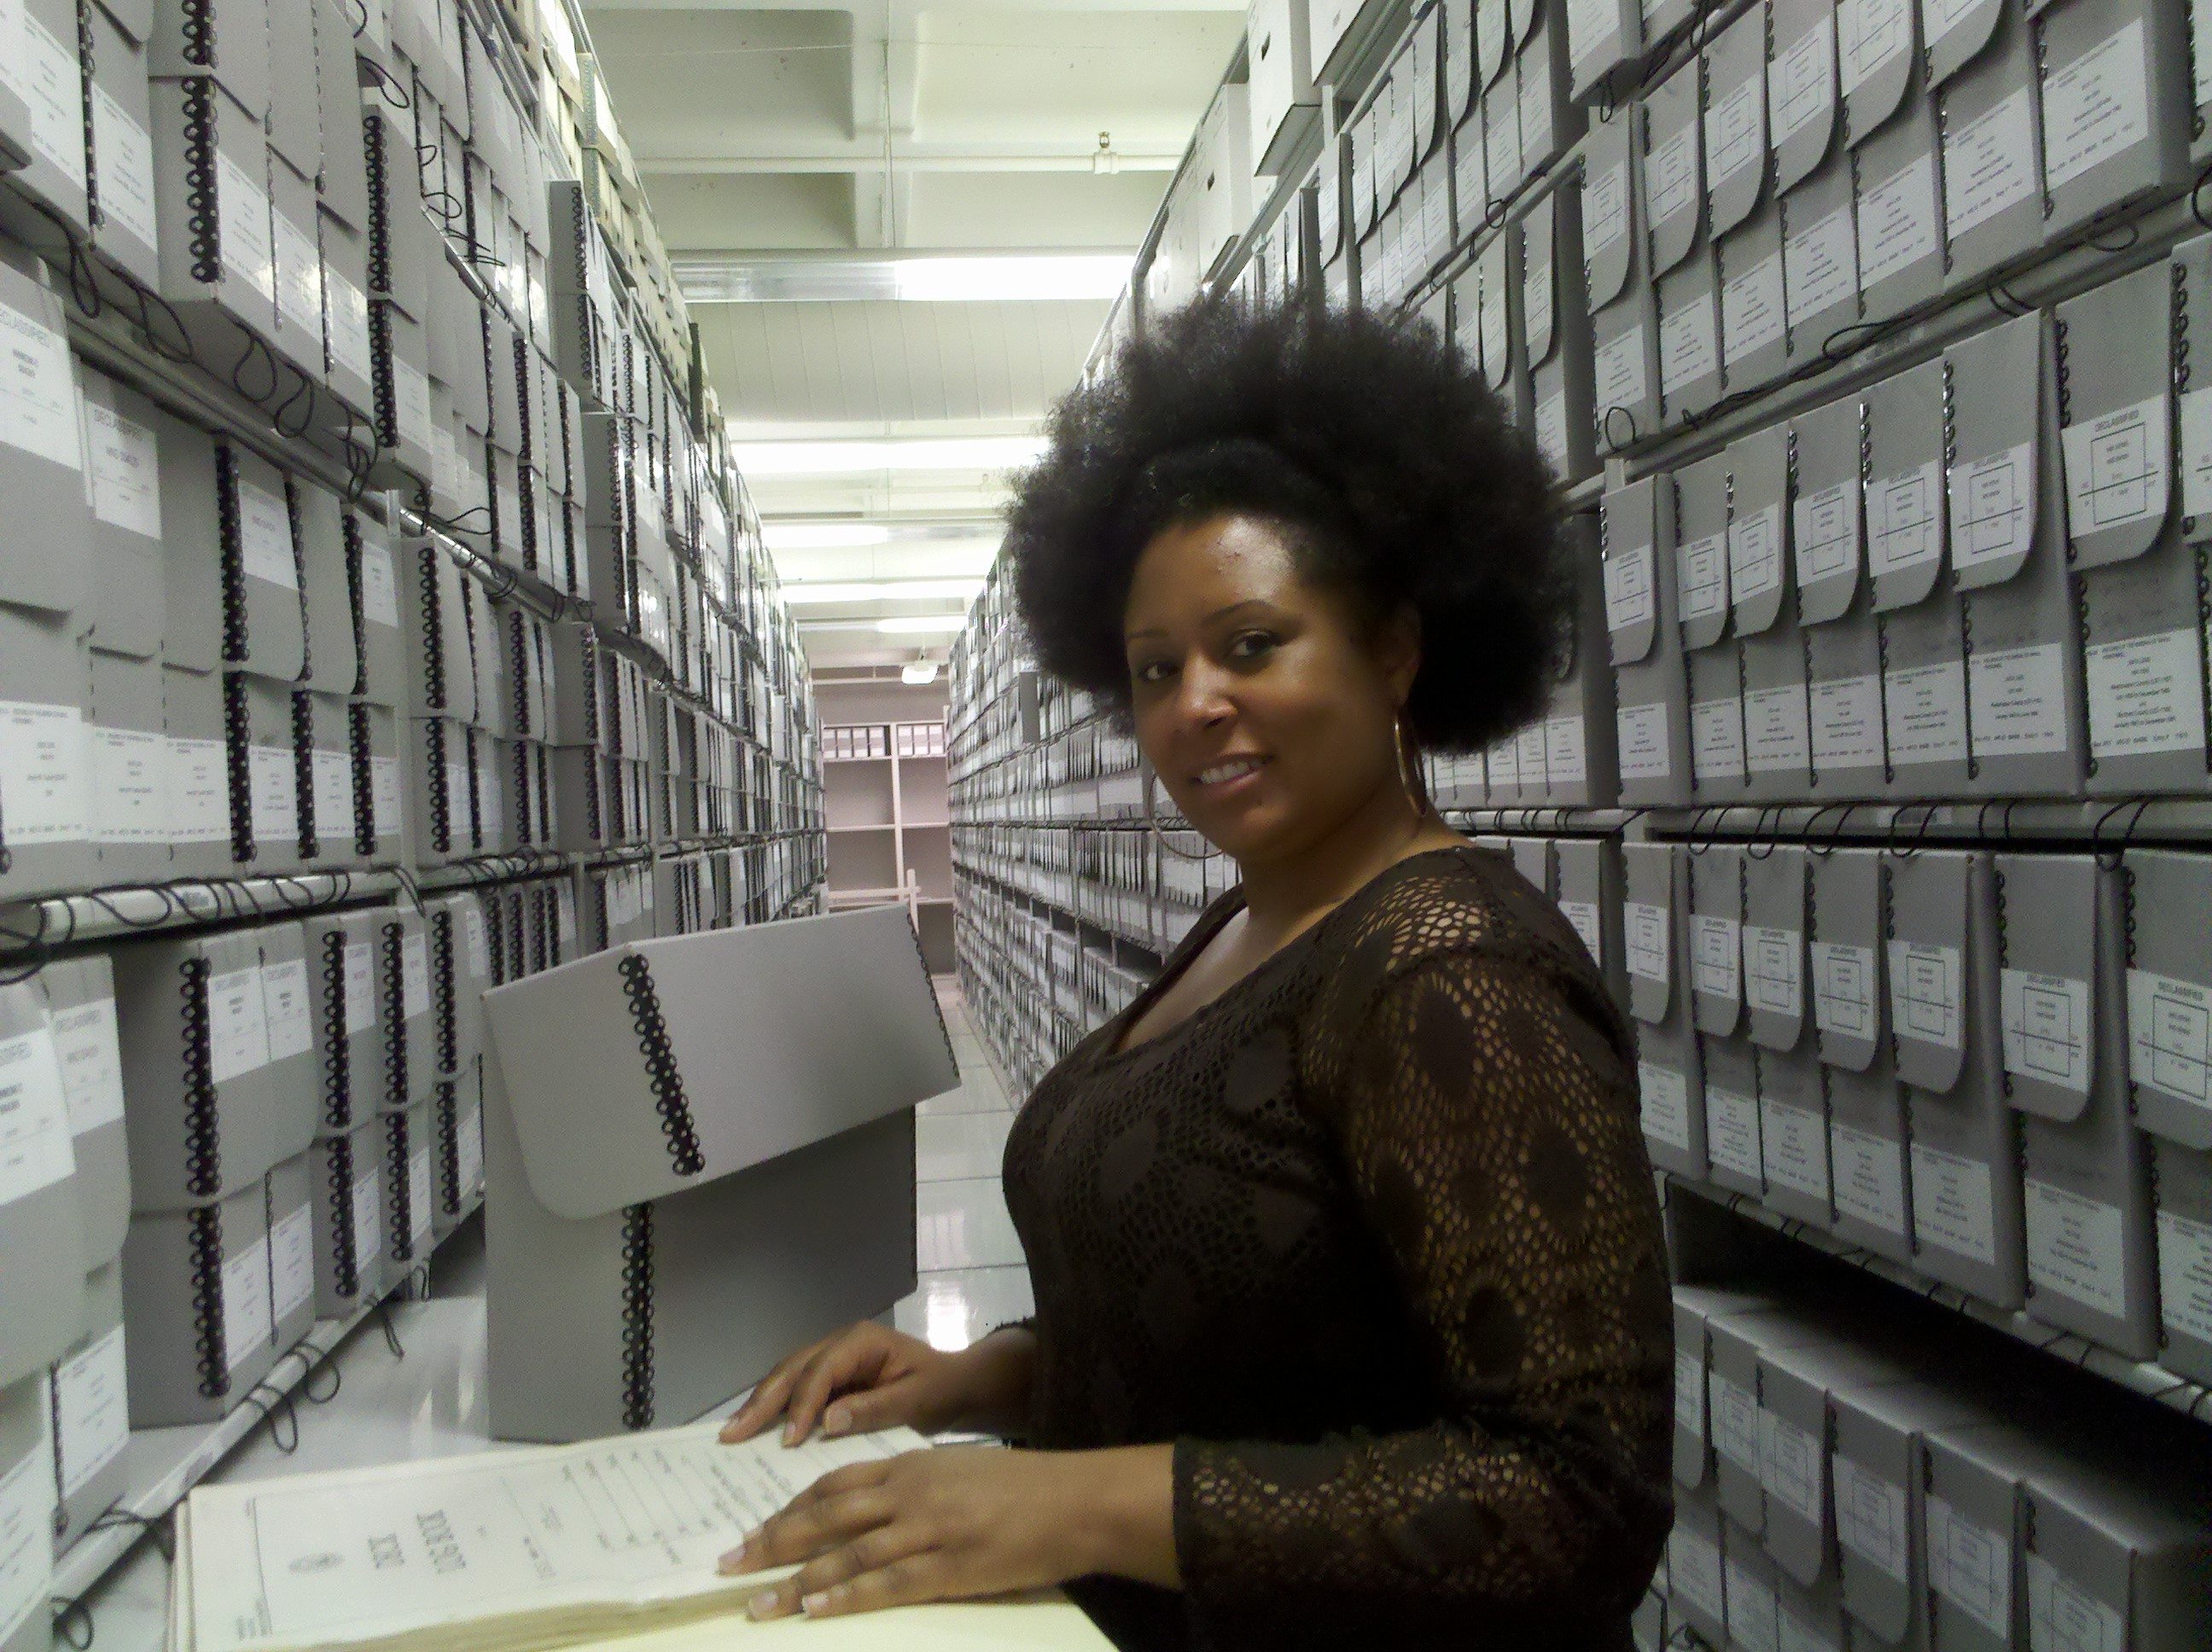 Tina Ligon views Navy Deck logs in the stacks at the National Archives in College Park, Maryland